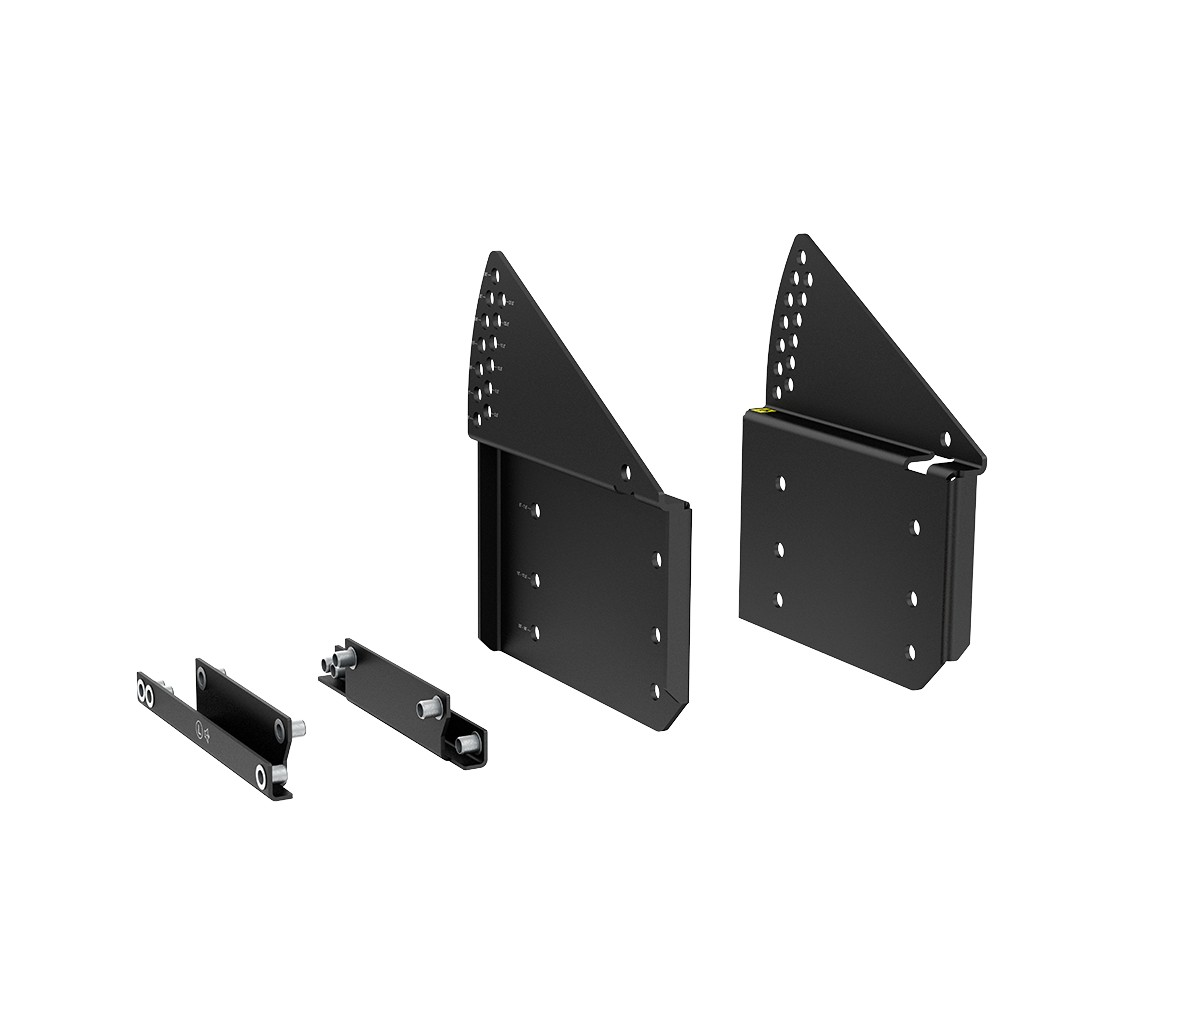 RMGSPB ground stack pitch brackets